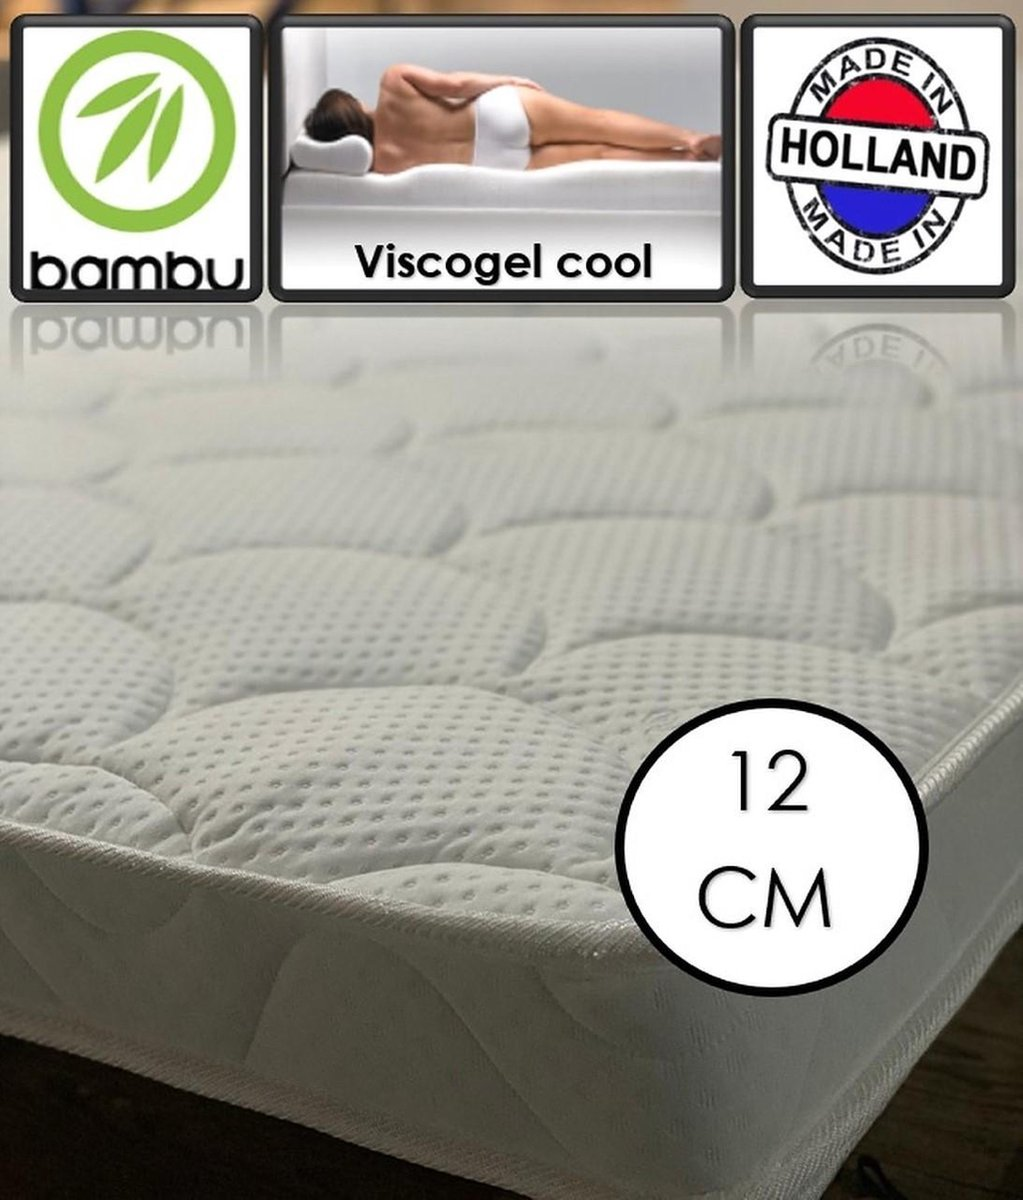 Bamboo Coolgel - Viscogel Topper - 12cm dik - 120x210